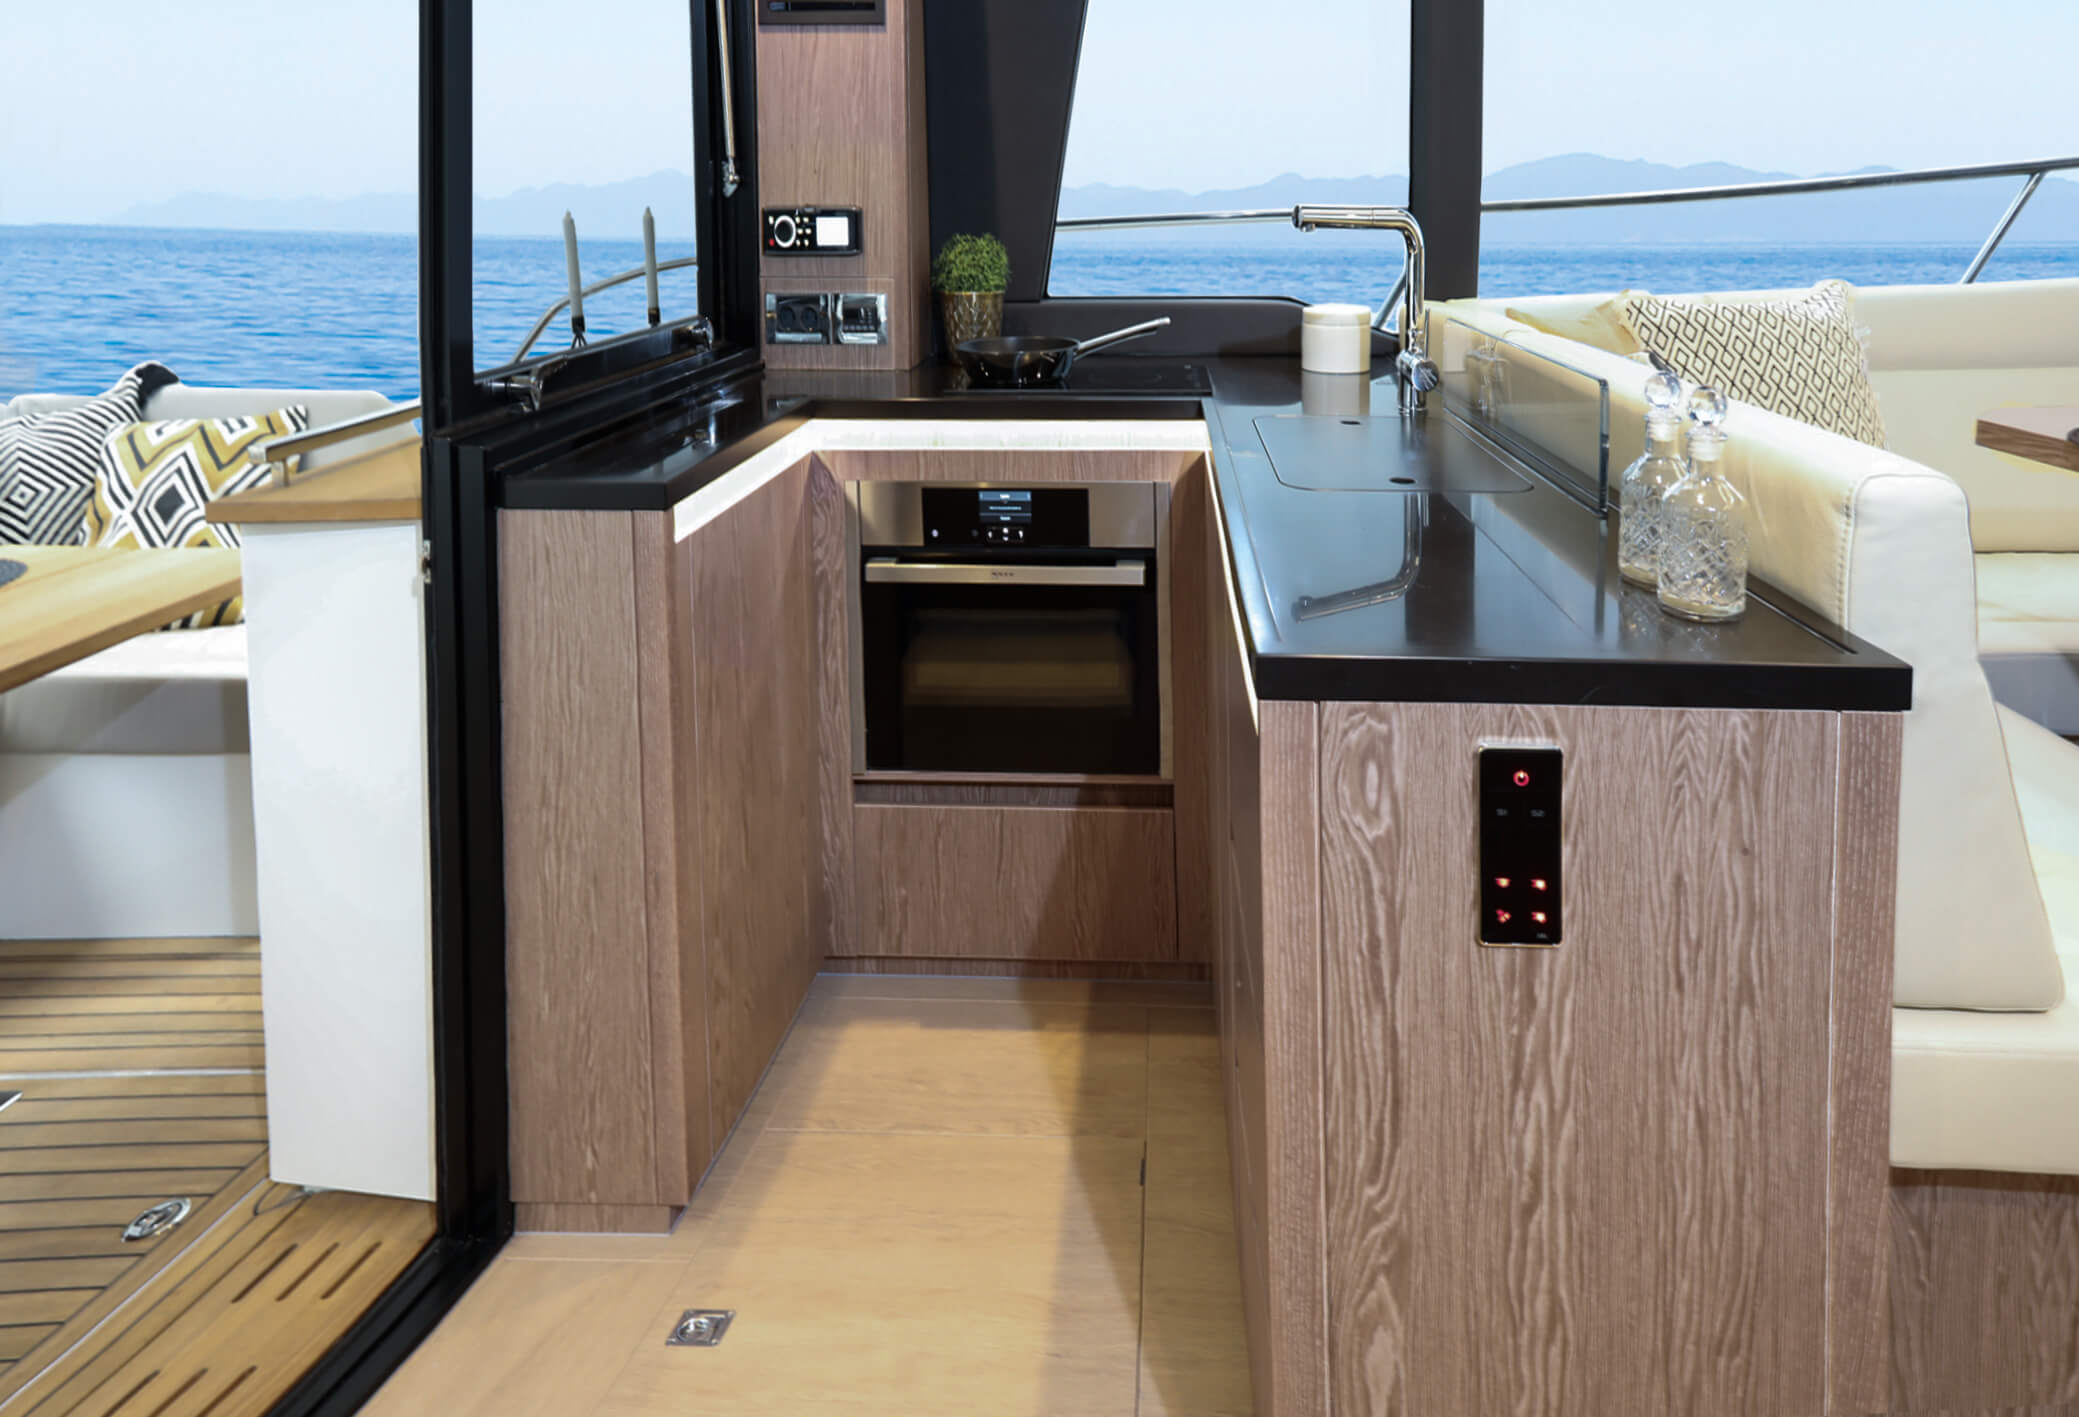 Sealine F430 Intérieur vue | Galley with stowage, fridge with freezer compartment, Electric cooktop with 2-rings, Electric oven with microwave function and sink. | Sealine